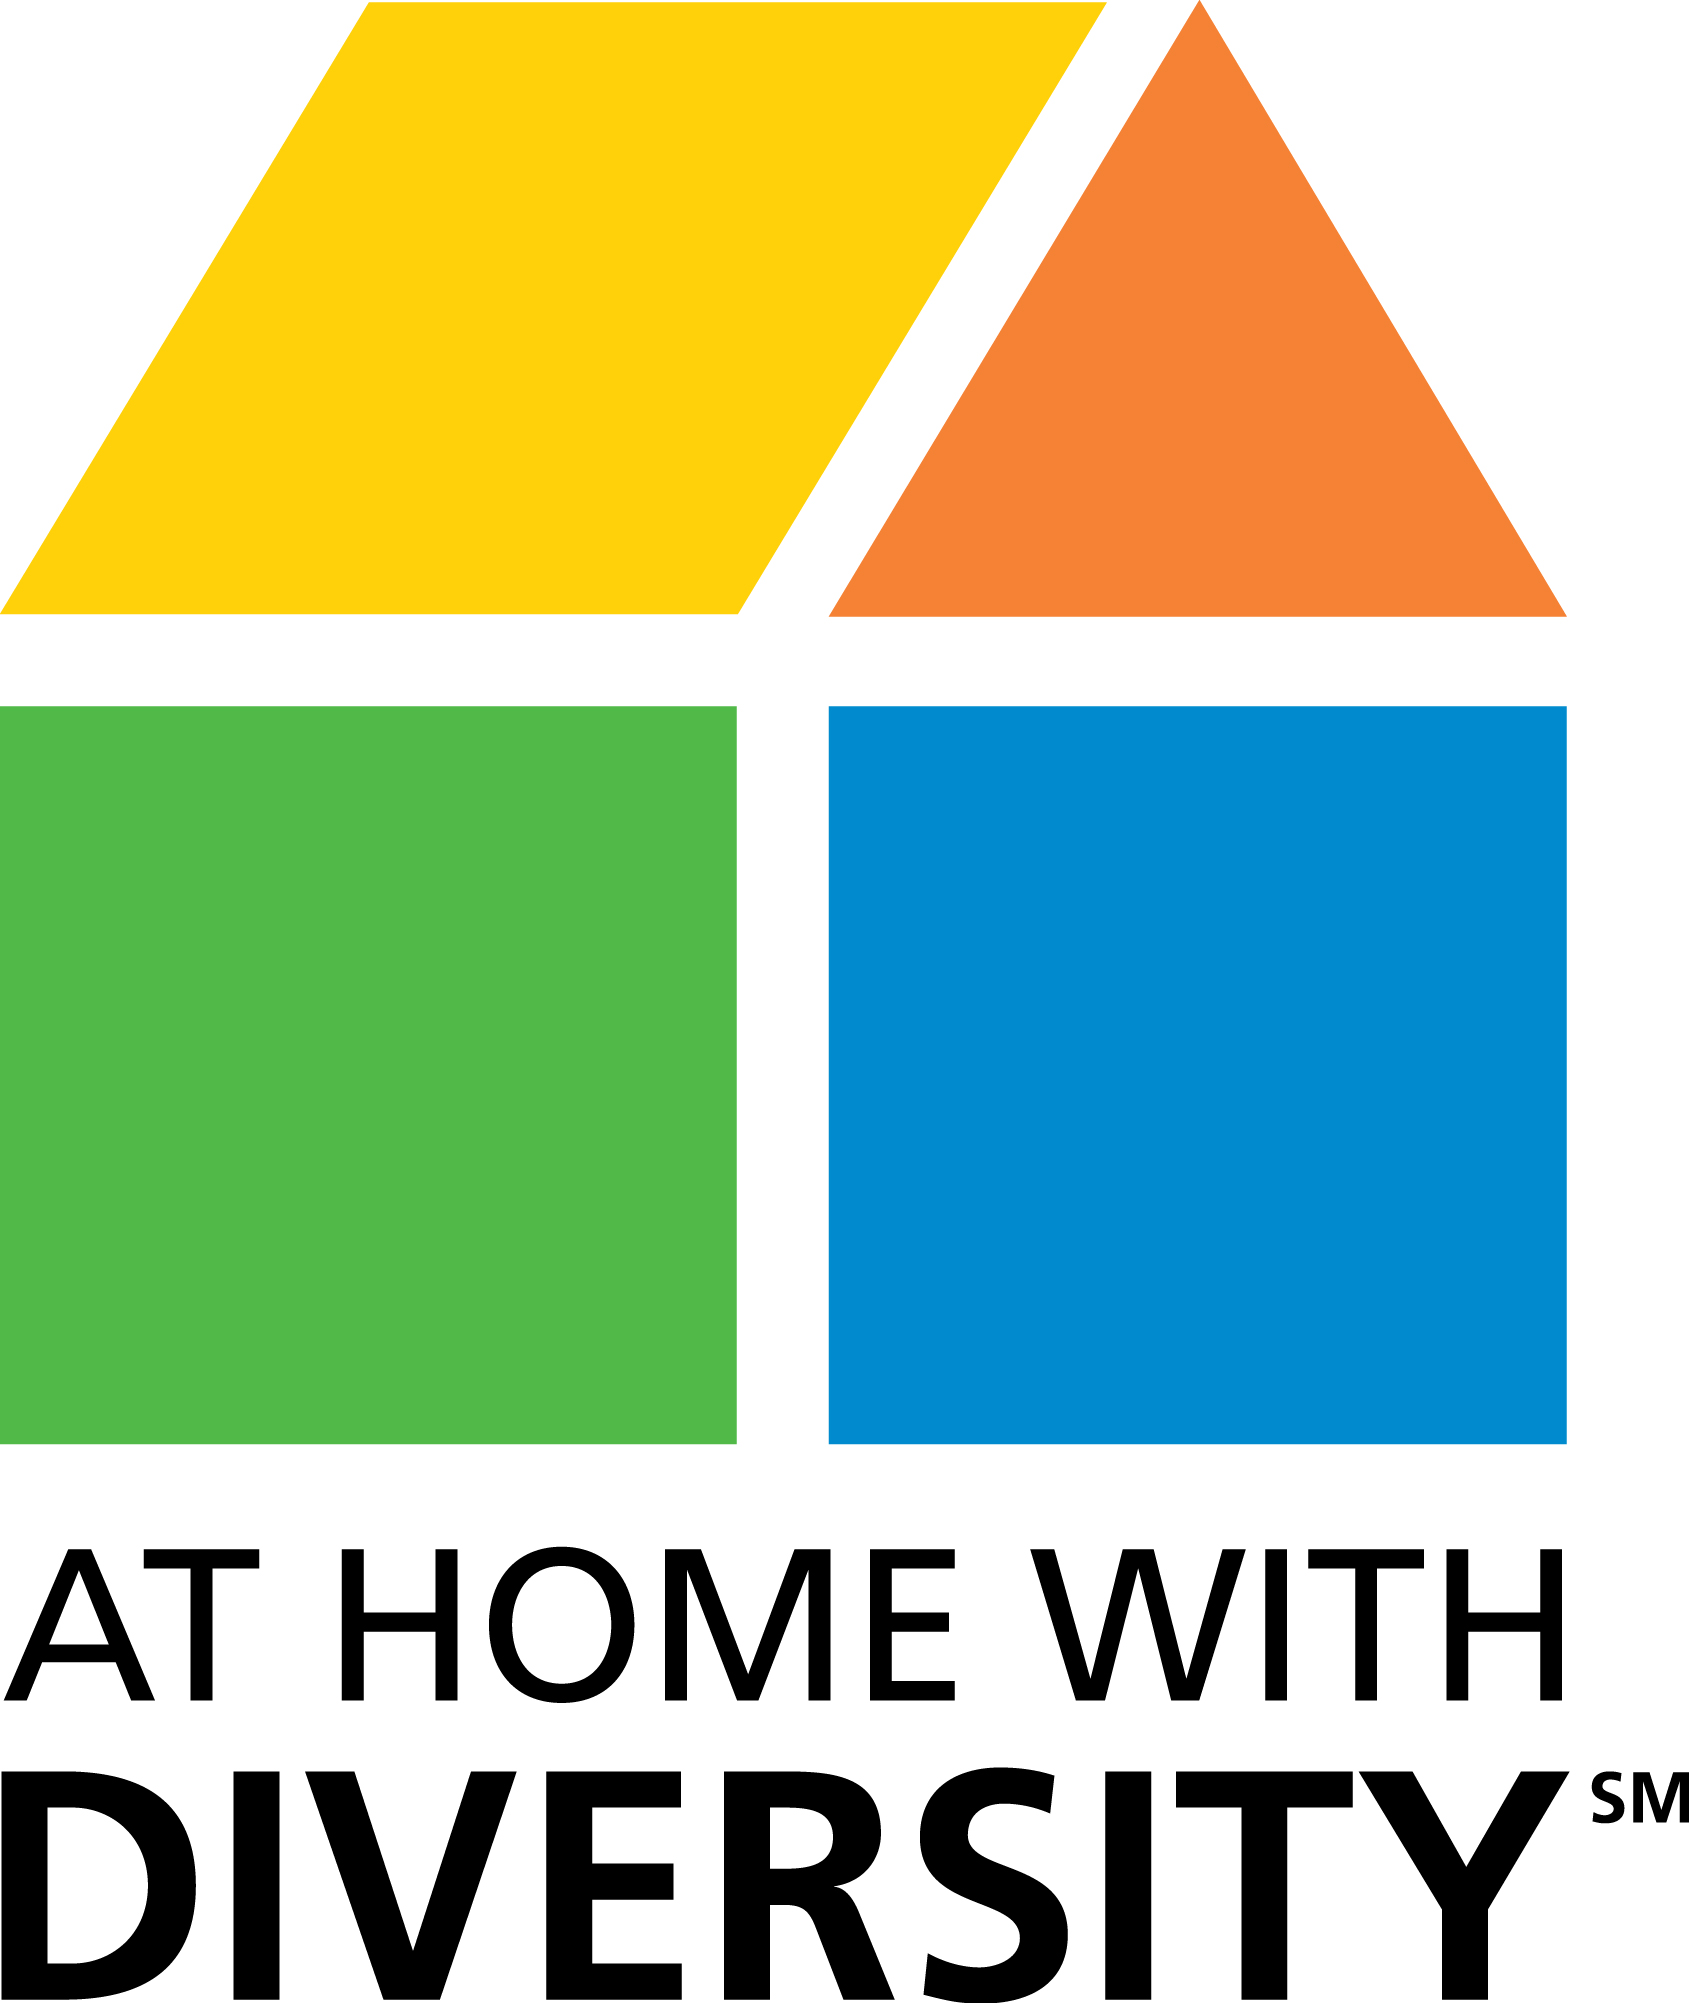 At Home with Diversity (AHWD)